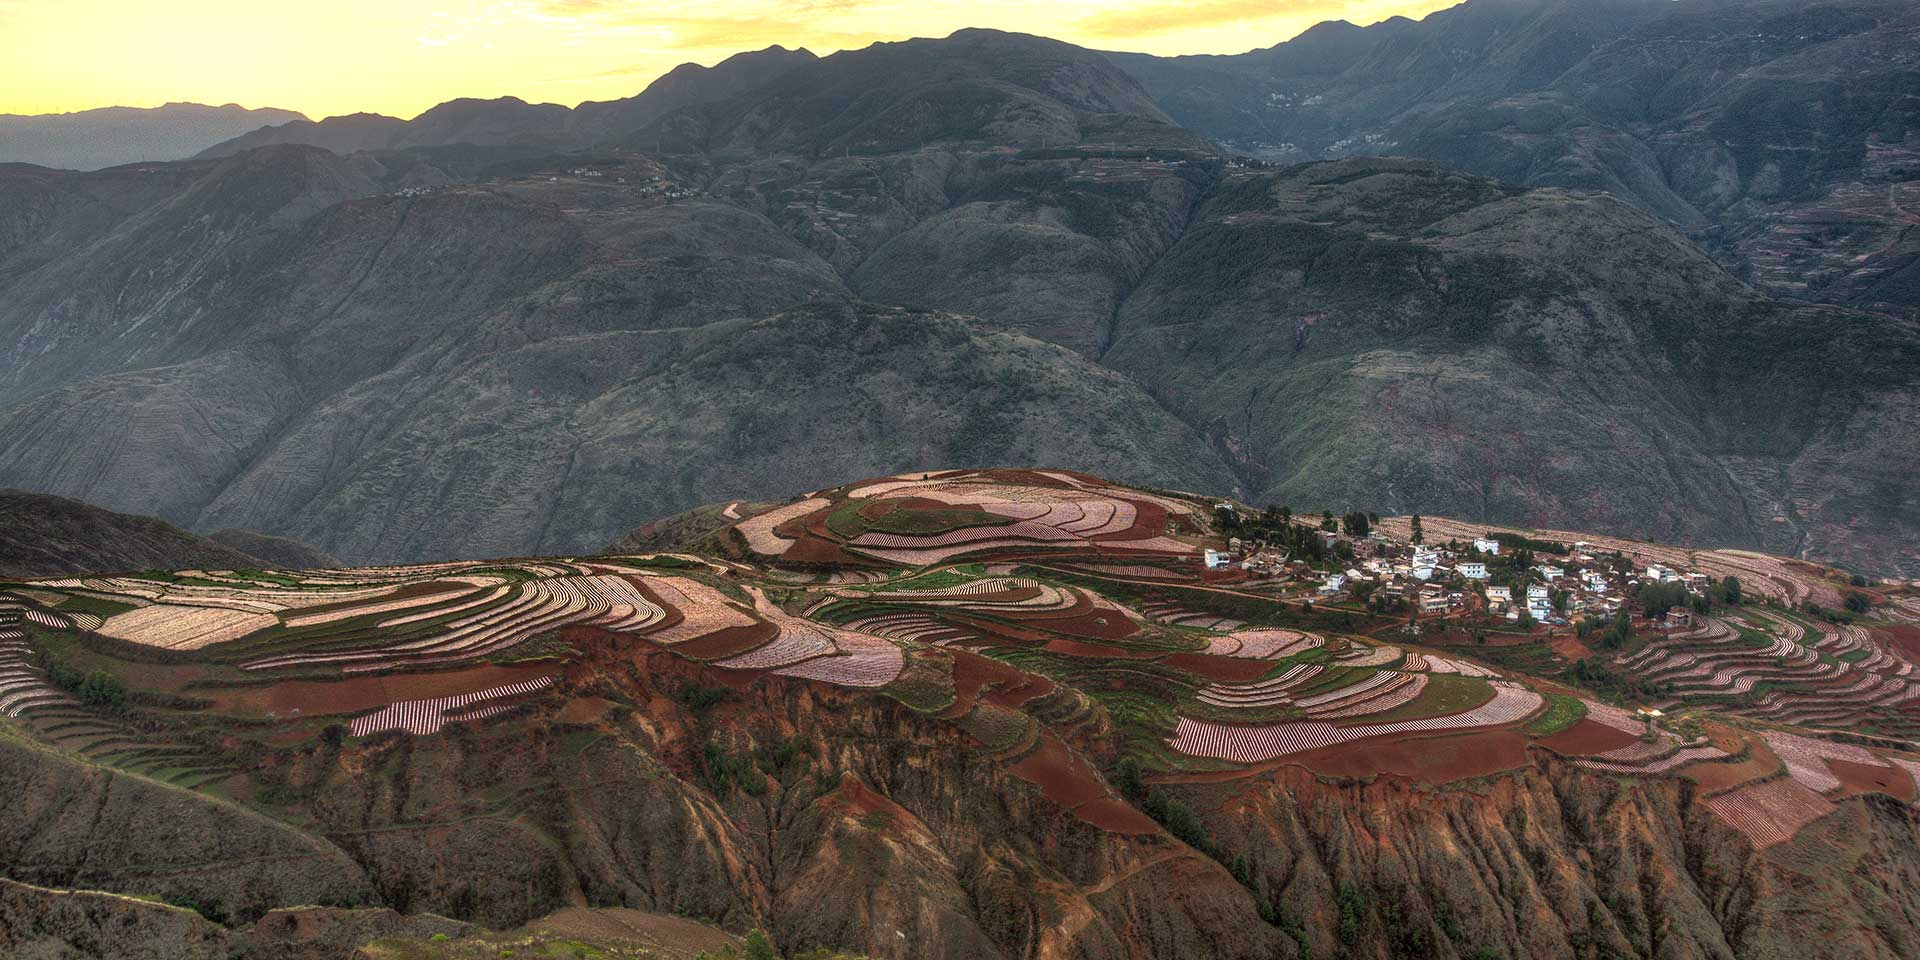 Red Soil, Greener Pastures: The Sun Sets in the Red Lands